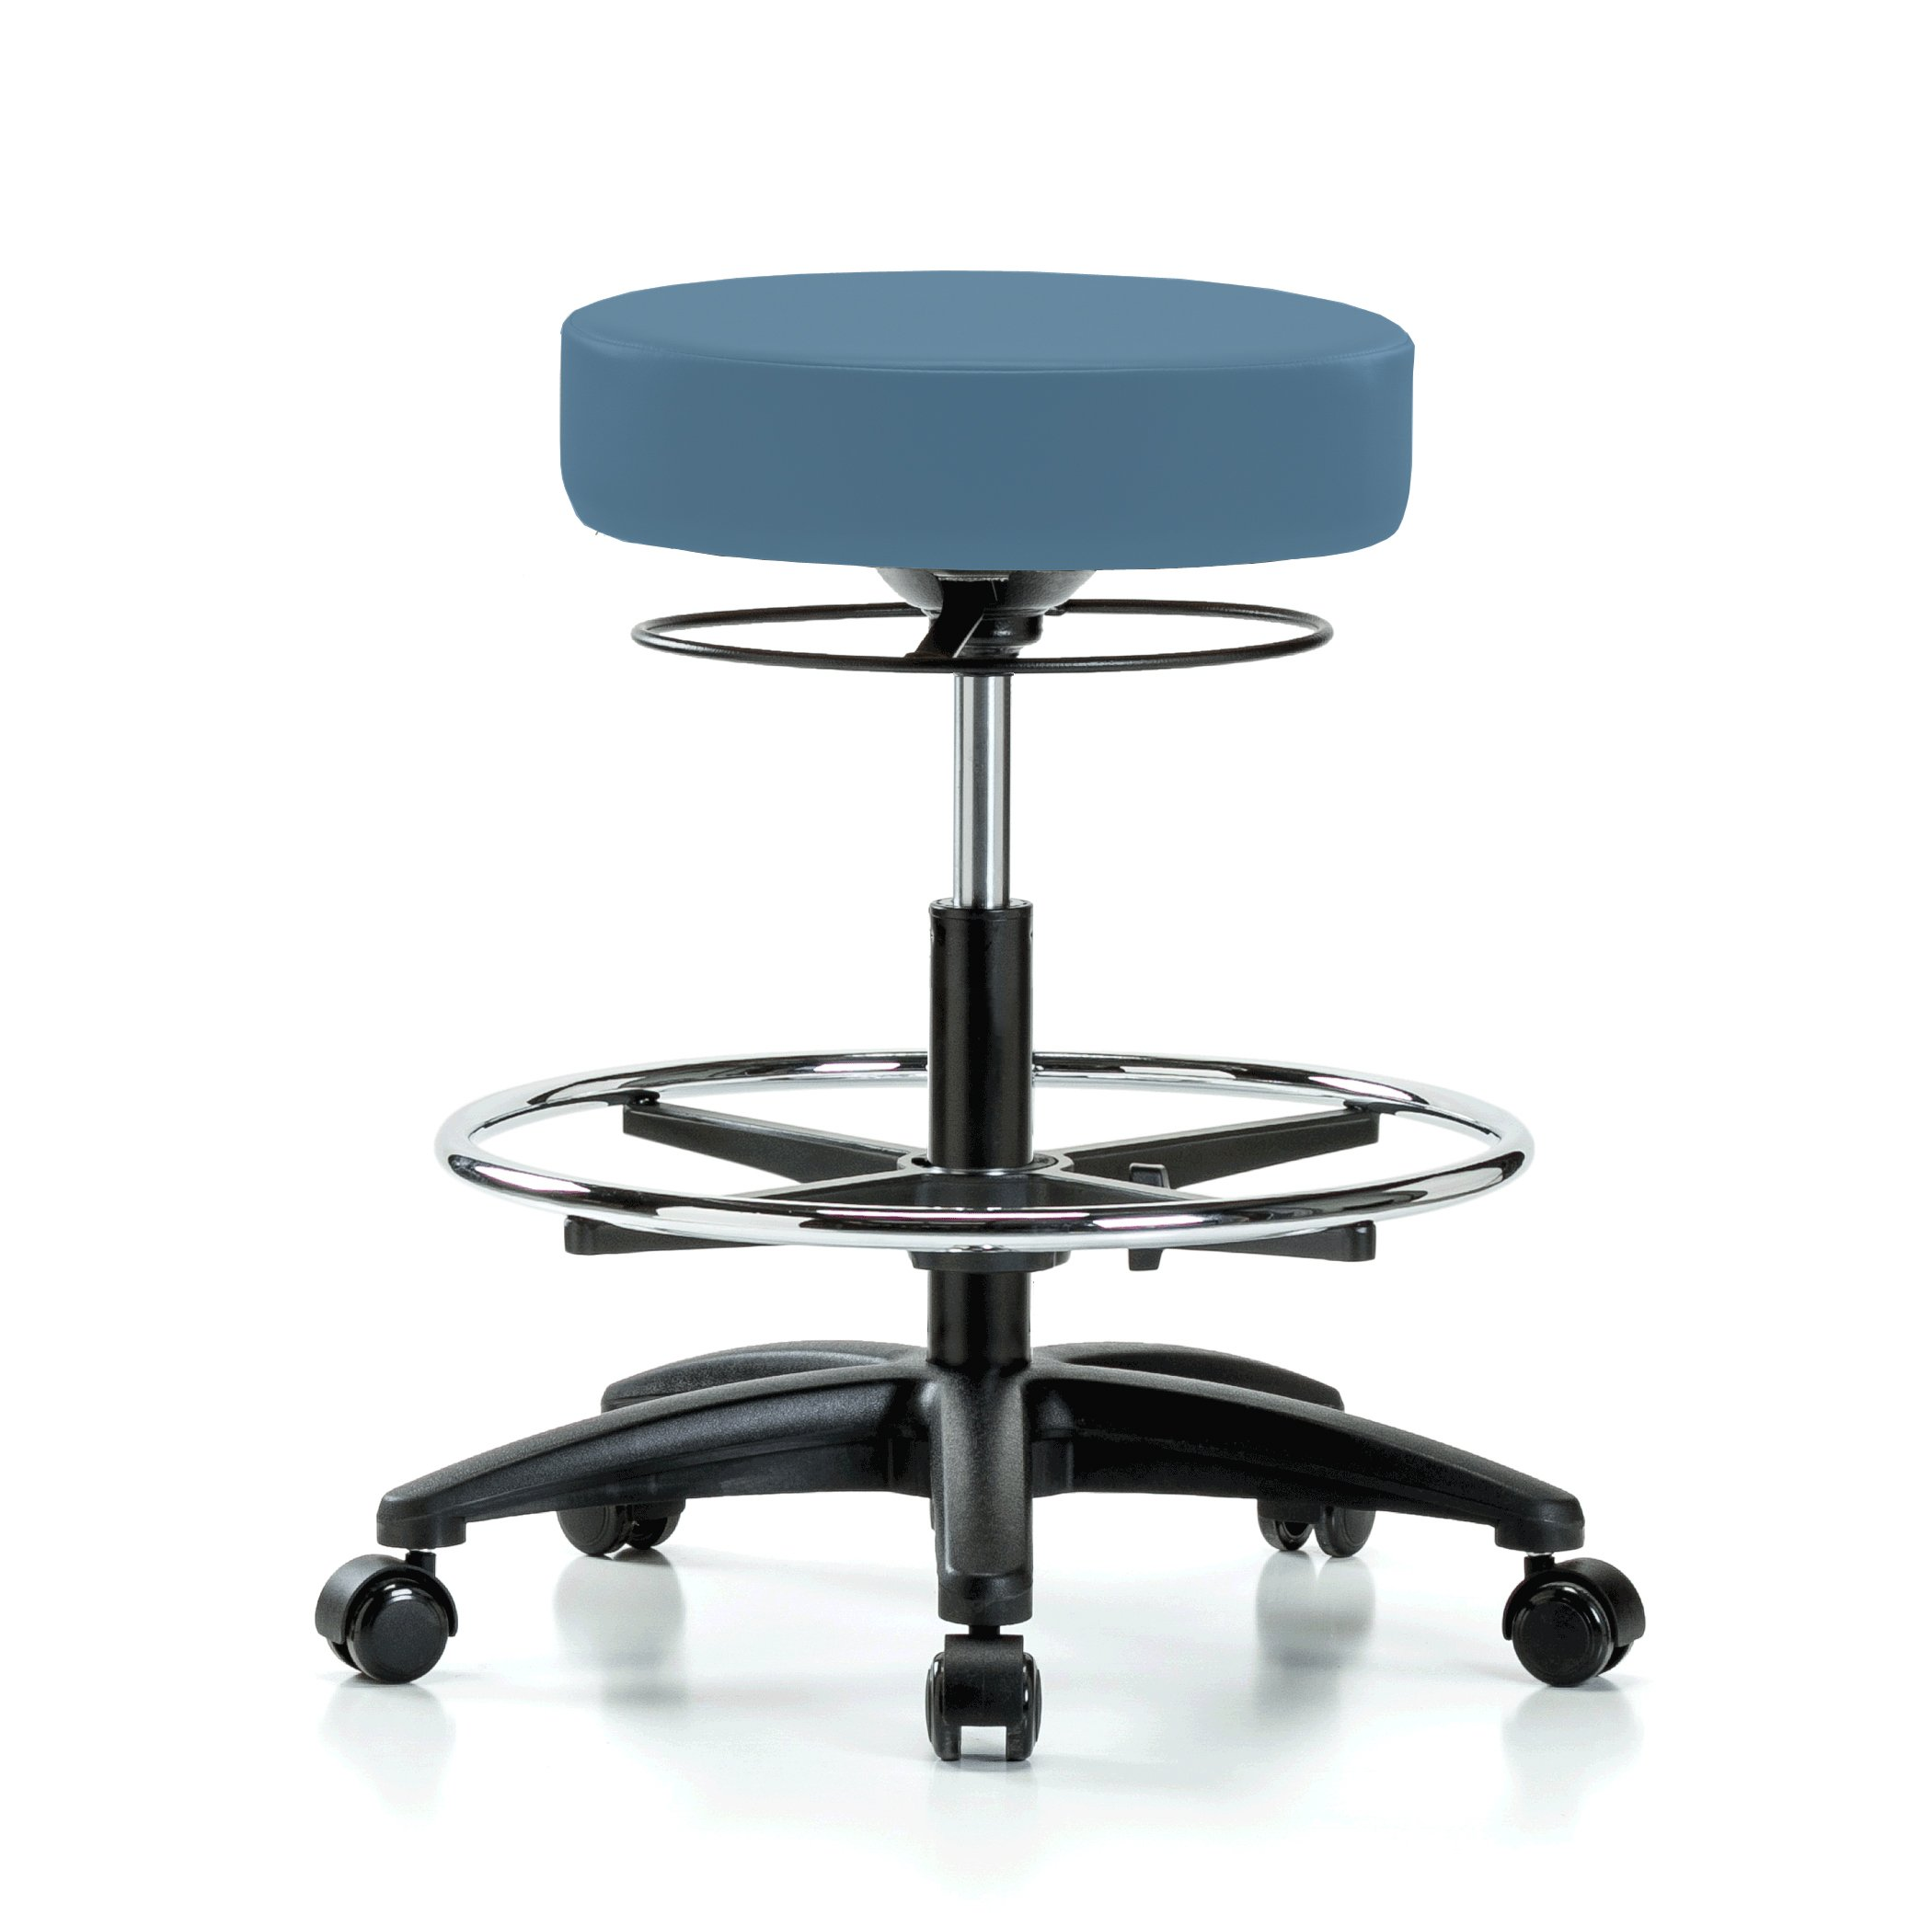 Perch Stella Rolling Adjustable Stool with Footring Medical Salon Spa Massage Tattoo Office 21'' - 28.5'' (Soft Floor Casters/Colonial Blue Vinyl)